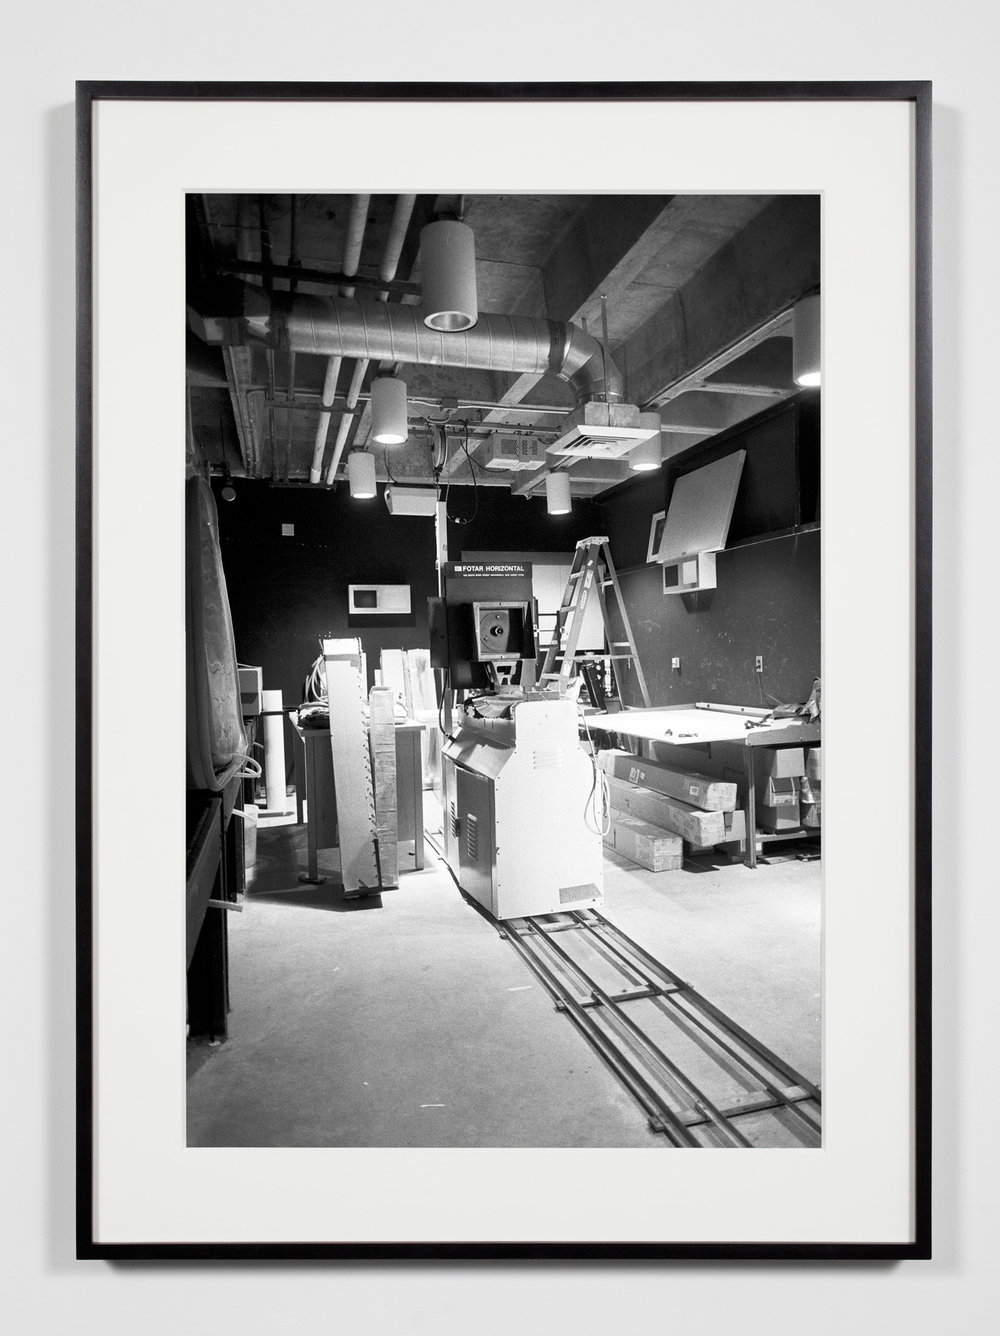 University Darkroom, 8 x 10 Horizontal Enlarger, Irvine, California, July 18, 2008   2011  Epson Ultrachrome K3 archival ink jet print on Hahnemühle Photo Rag paper  36 3/8 x 26 3/8 inches   Industrial Portraits, 2008–    A Diagram of Forces, 2011